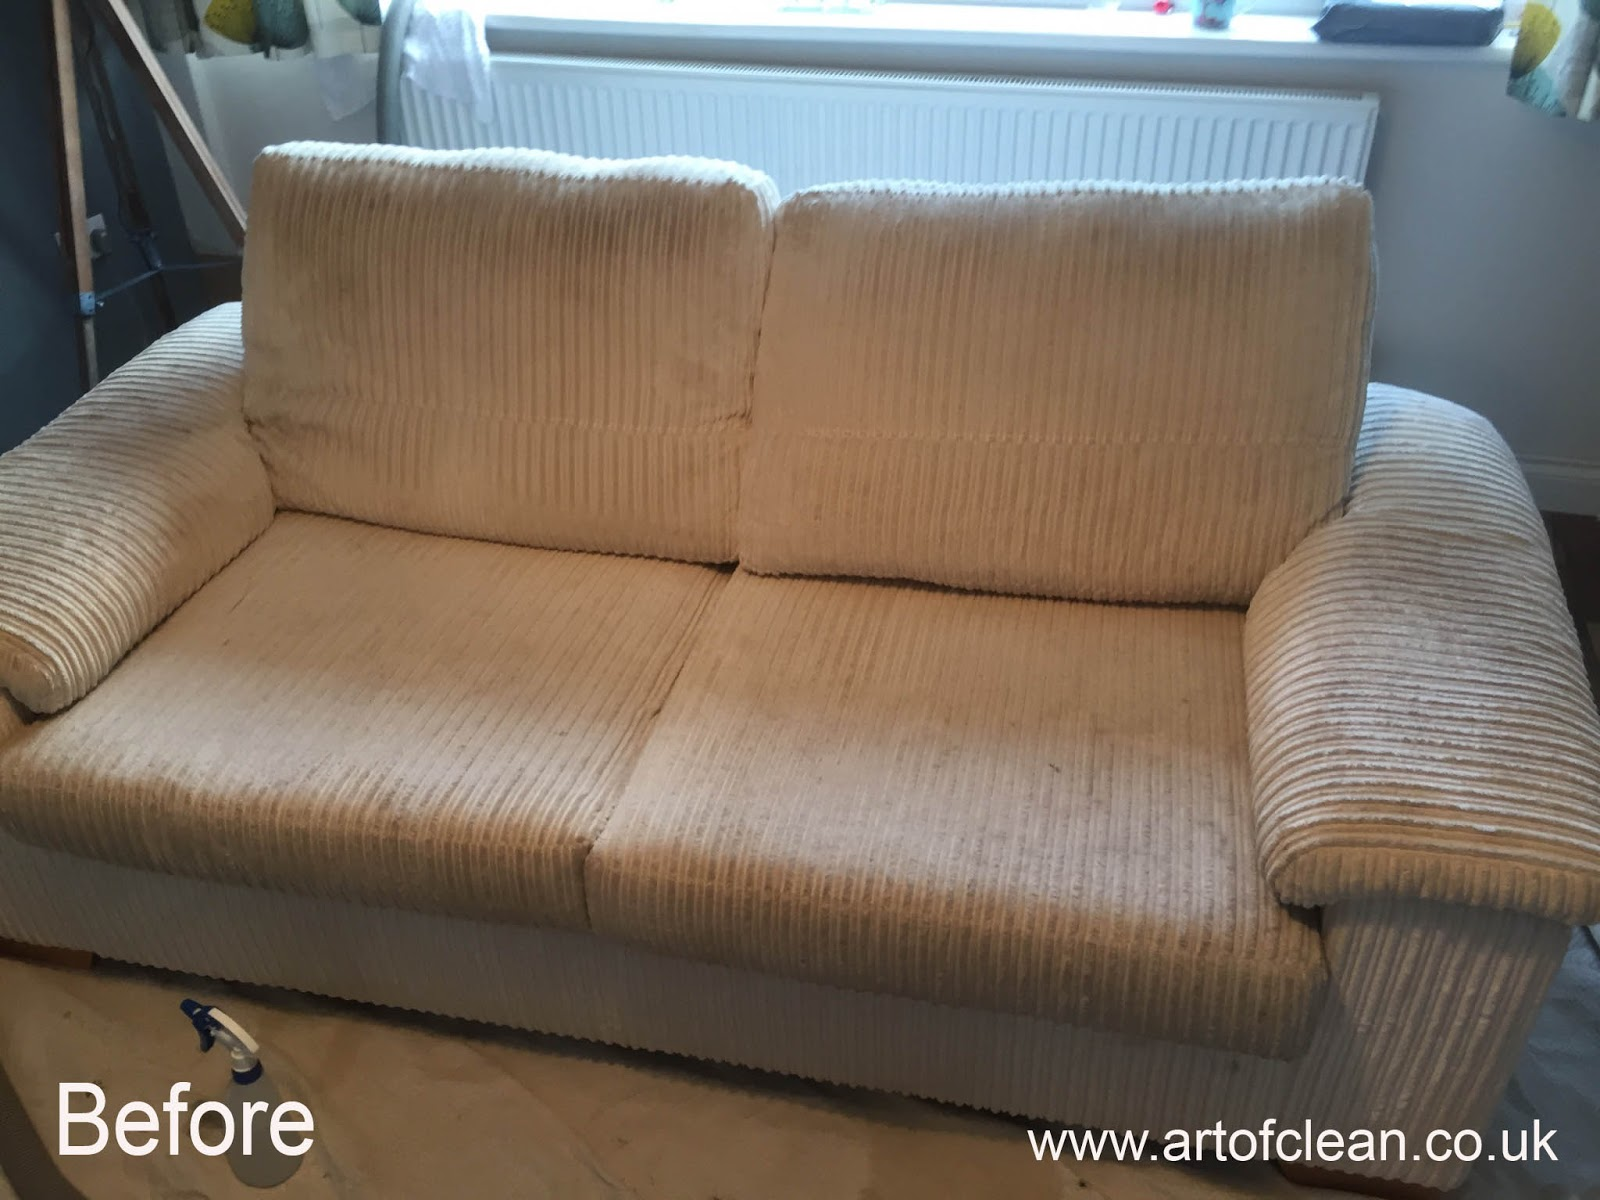 Do You Know We Clean Sofas Art Of Clean Uk 01223 863632